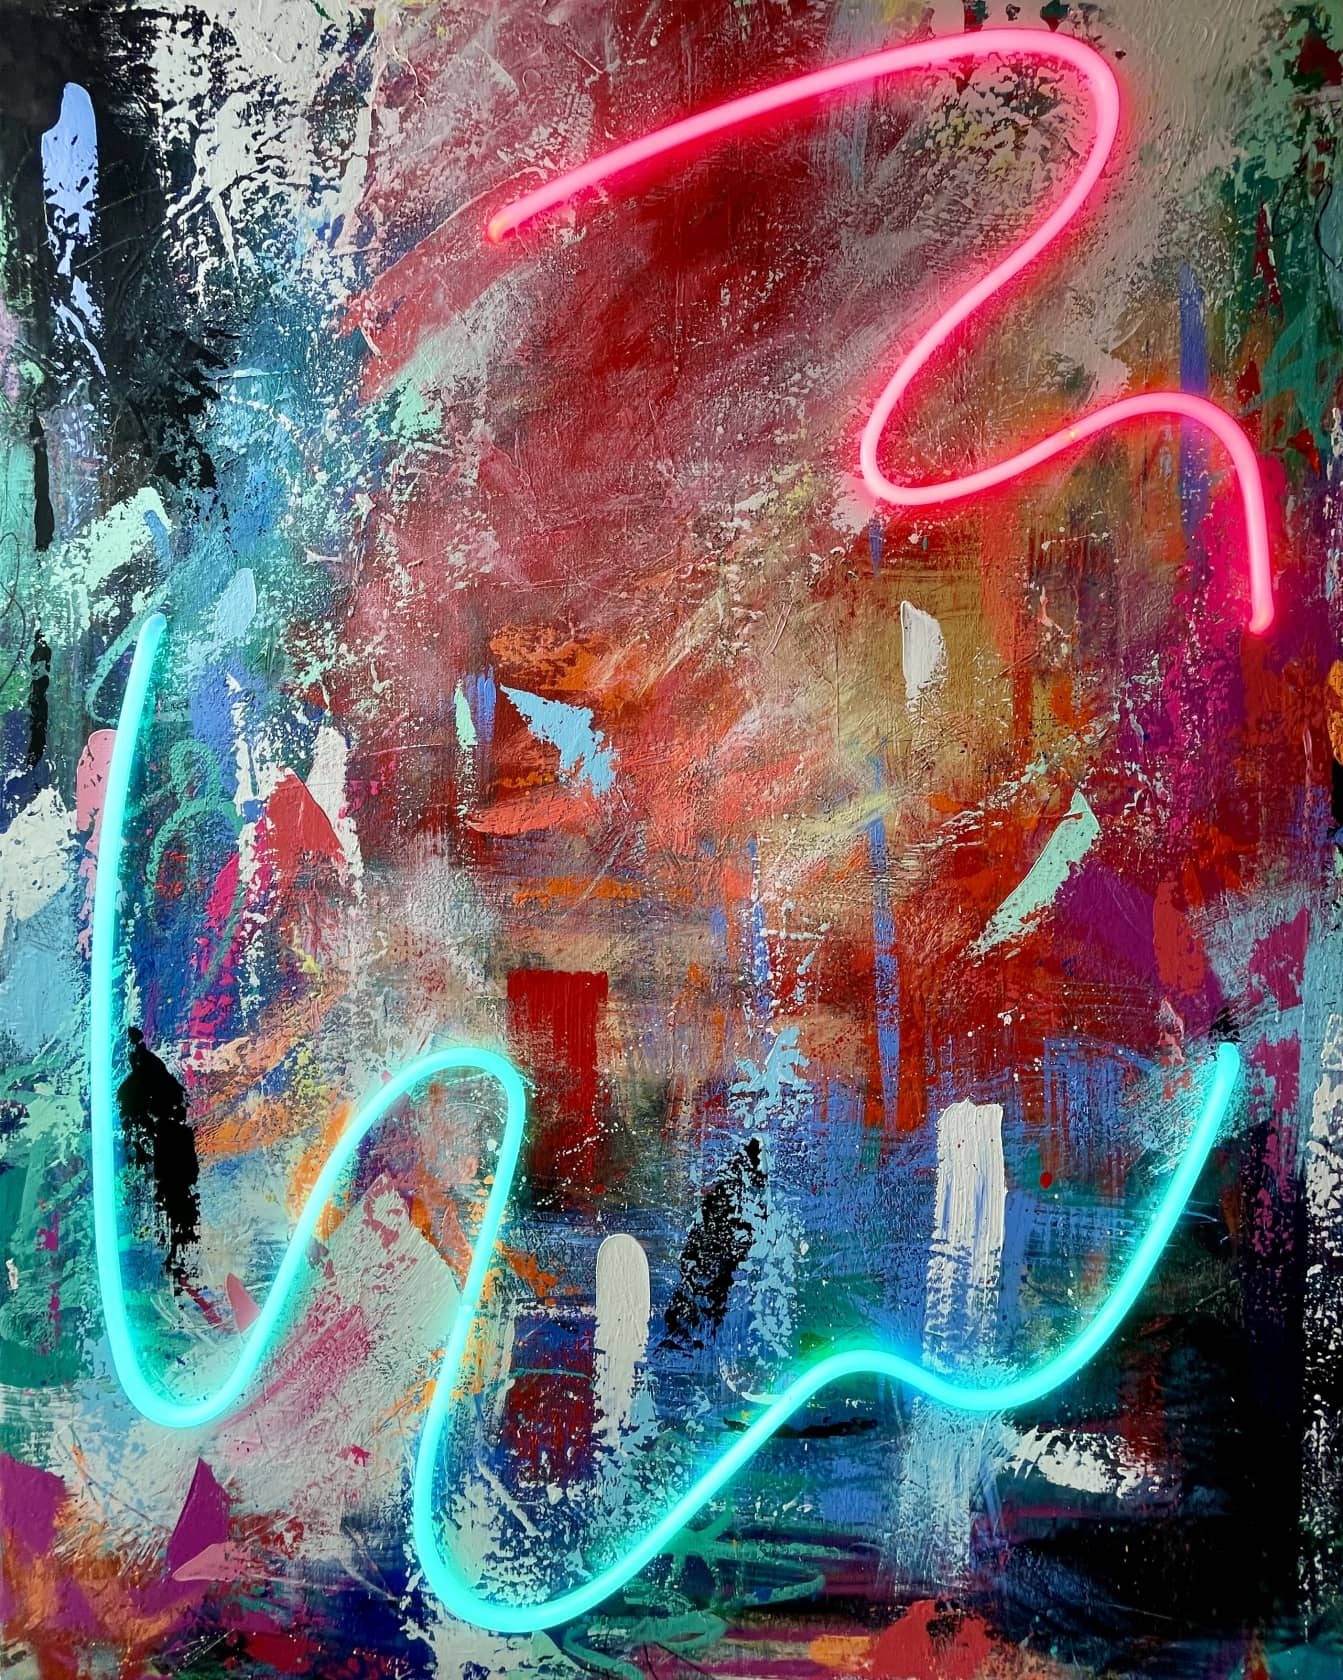 Sean Crim Beauty in Chaos 3 Acrylic, oil, and neon on canvas